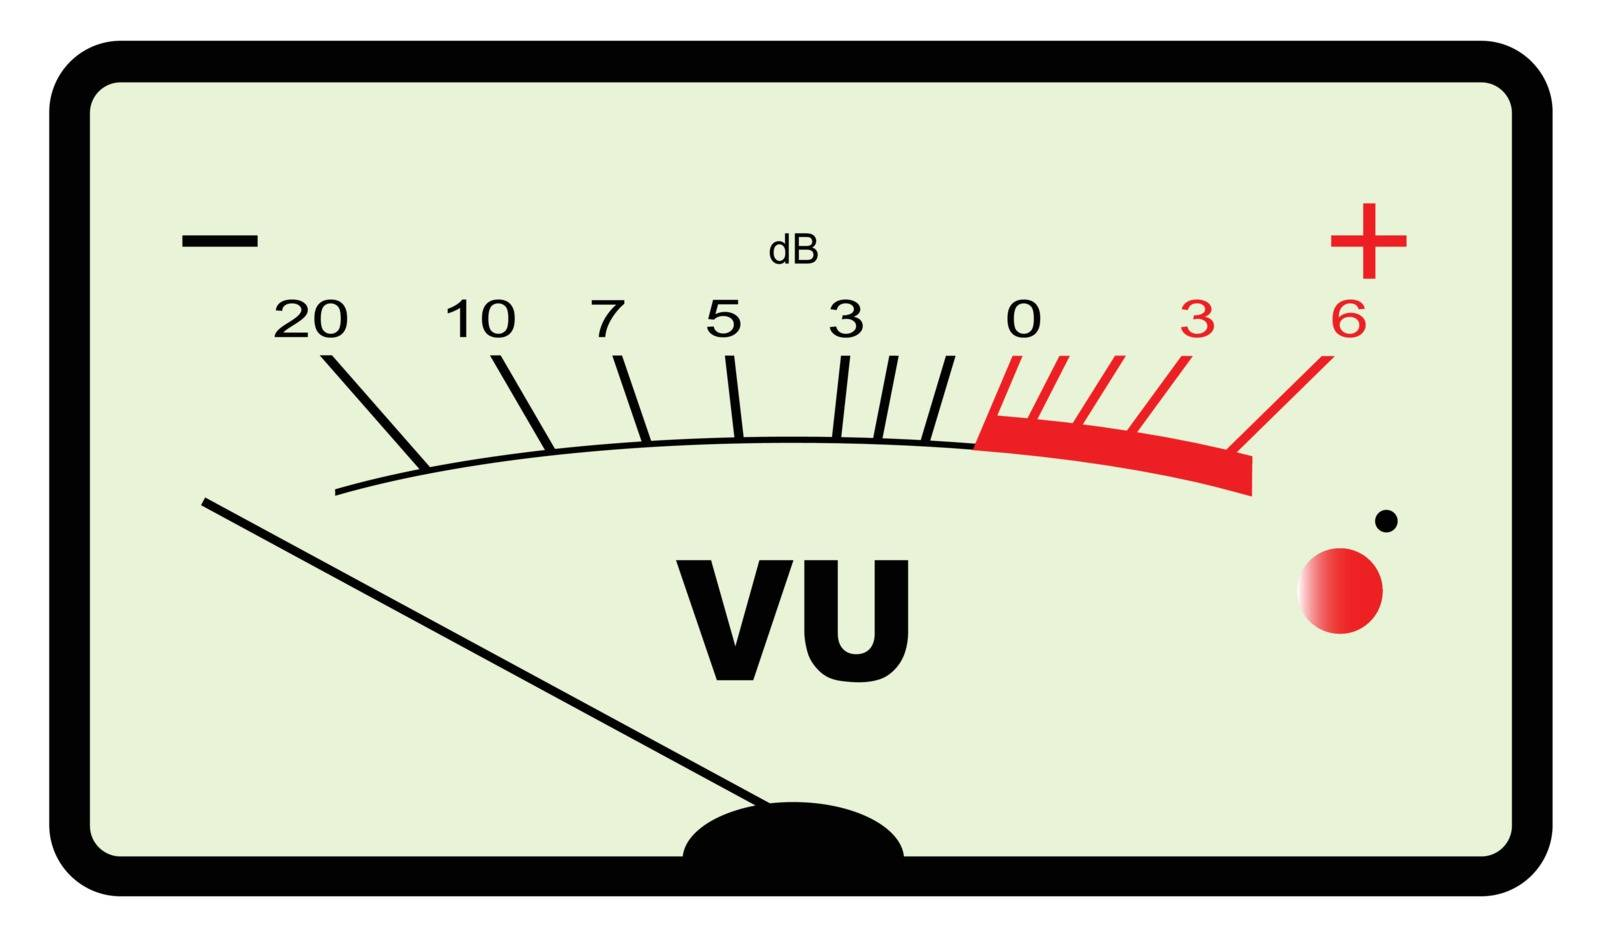 A typical analogue audio meter as found on old tape recorders with the needle in the black